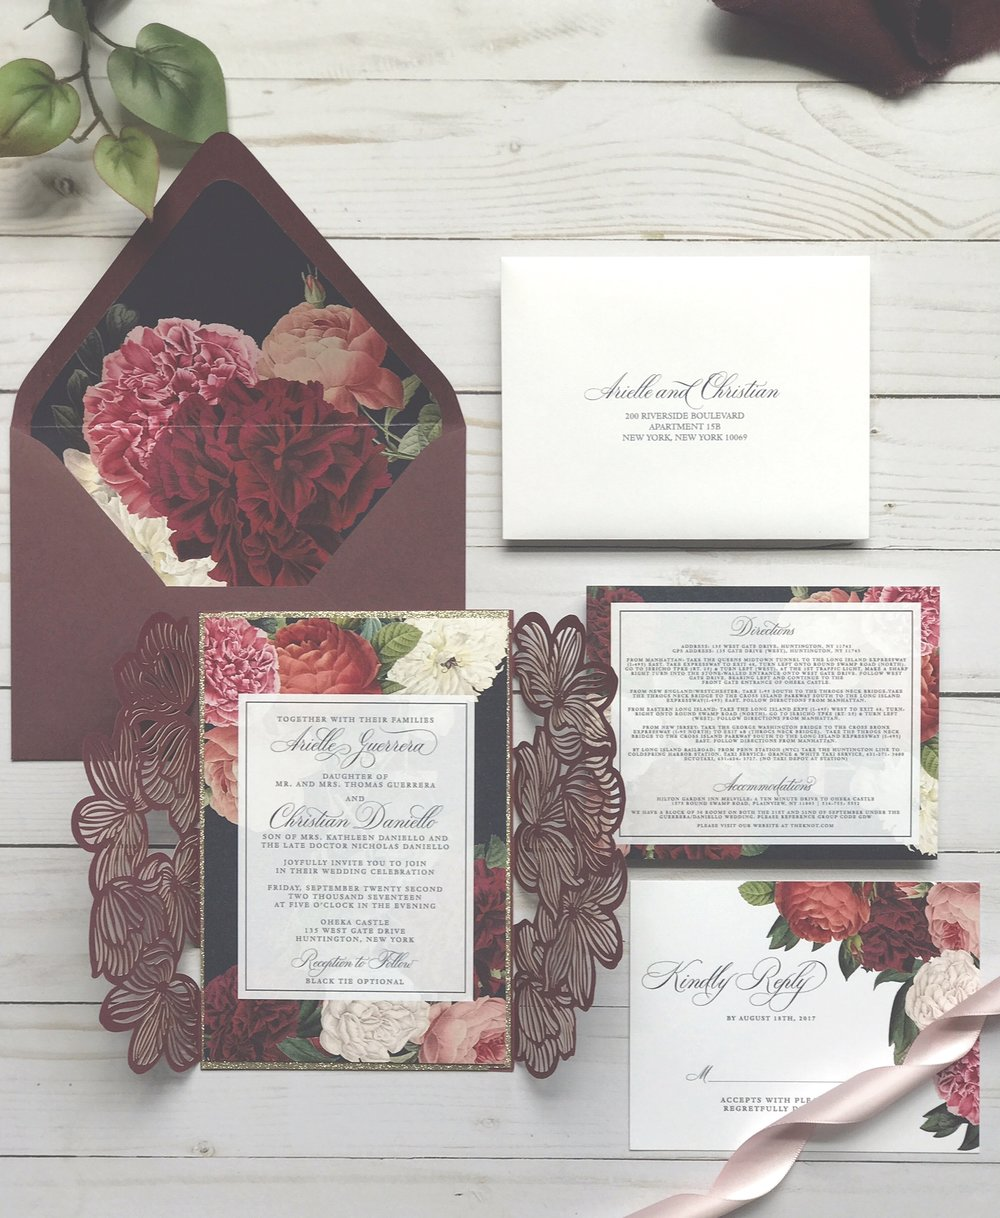 Custom Wedding Invitations. Floral wedding invitations. Marsala and Navy invitations. Merlot and navy floral invitations